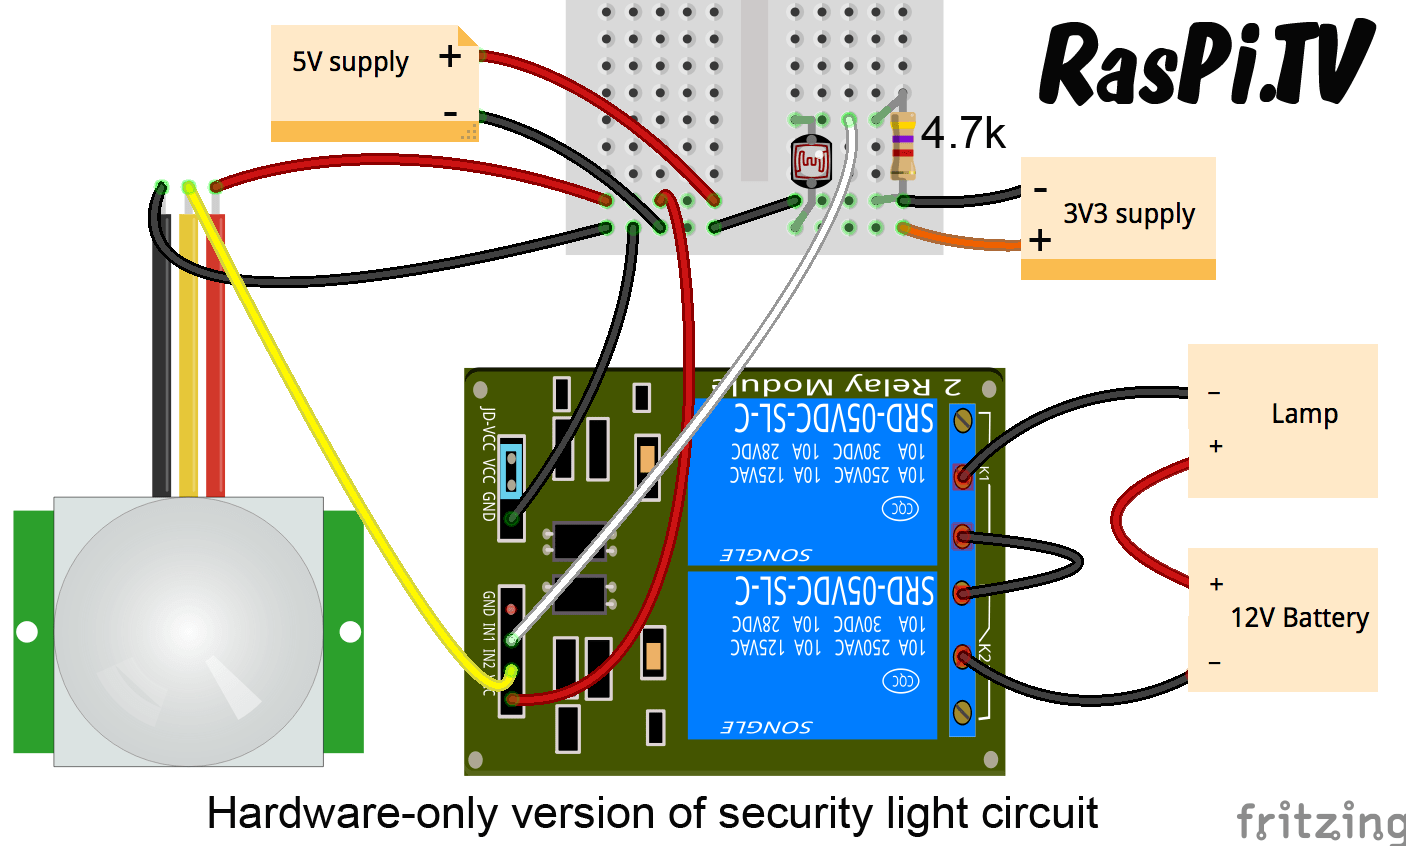 hight resolution of security light circuit in hardware only zero lines of code